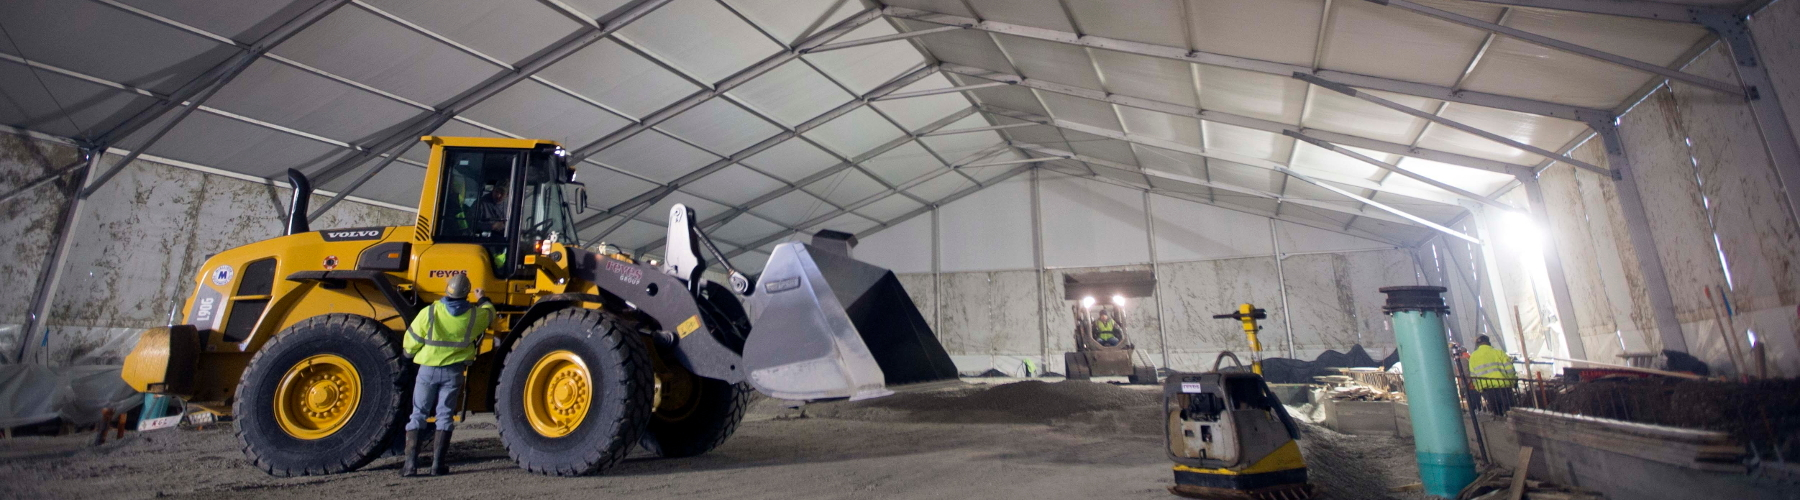 Clear Span Tent Rentals - American Pavilion image 2